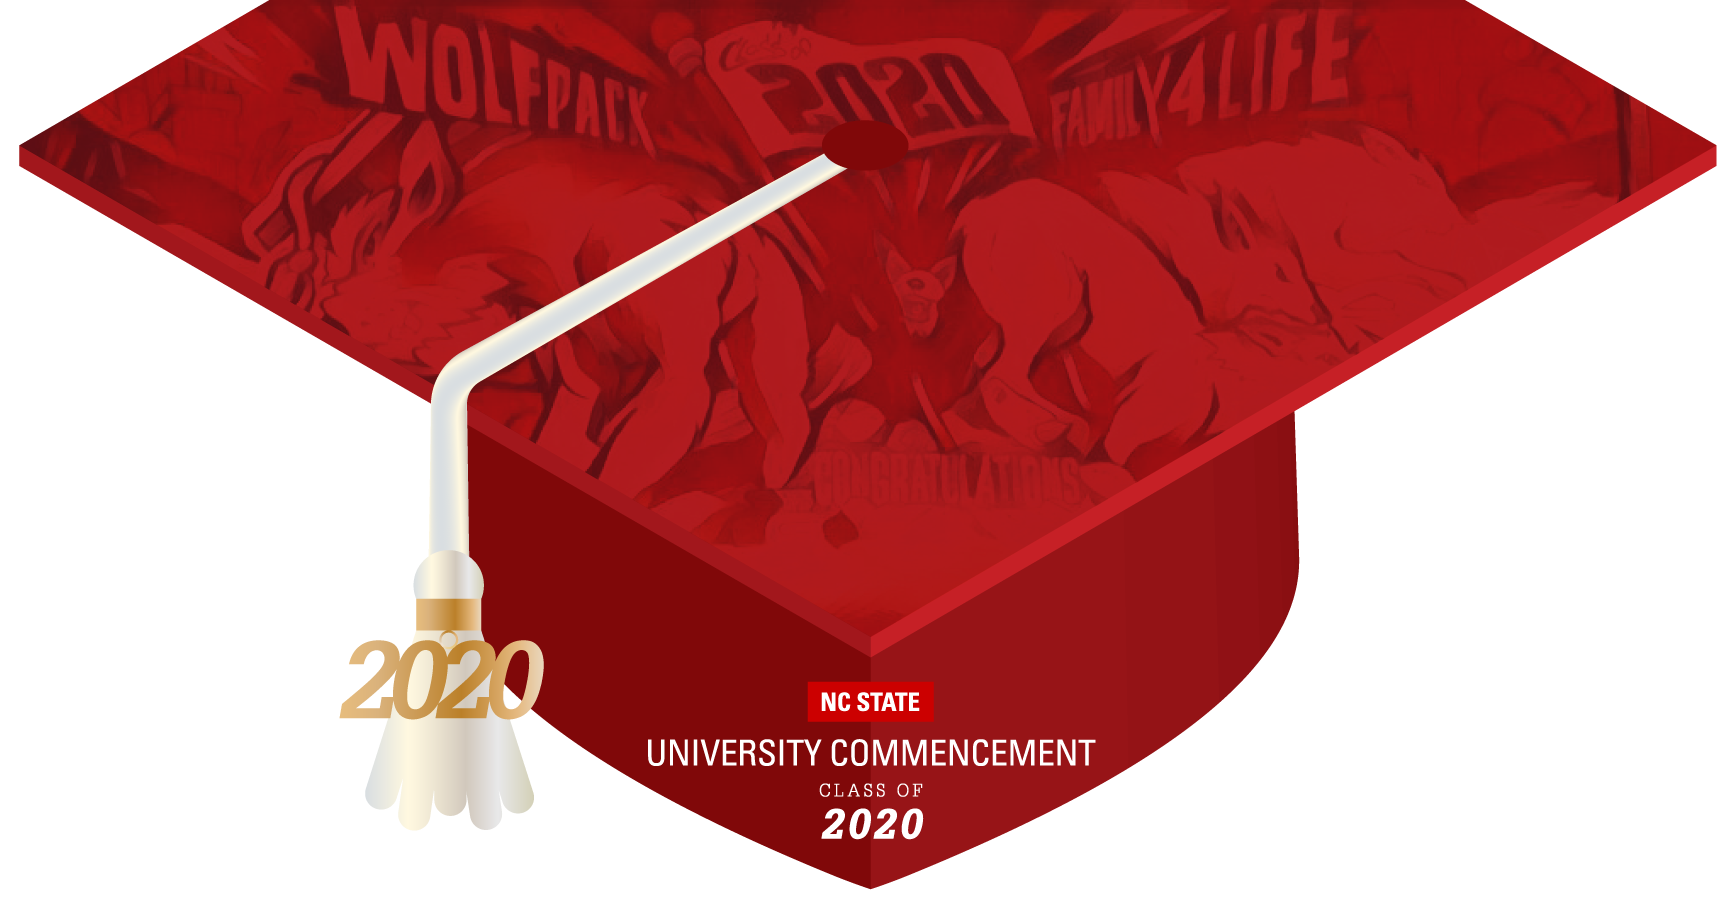 NC State University Commencement 2020